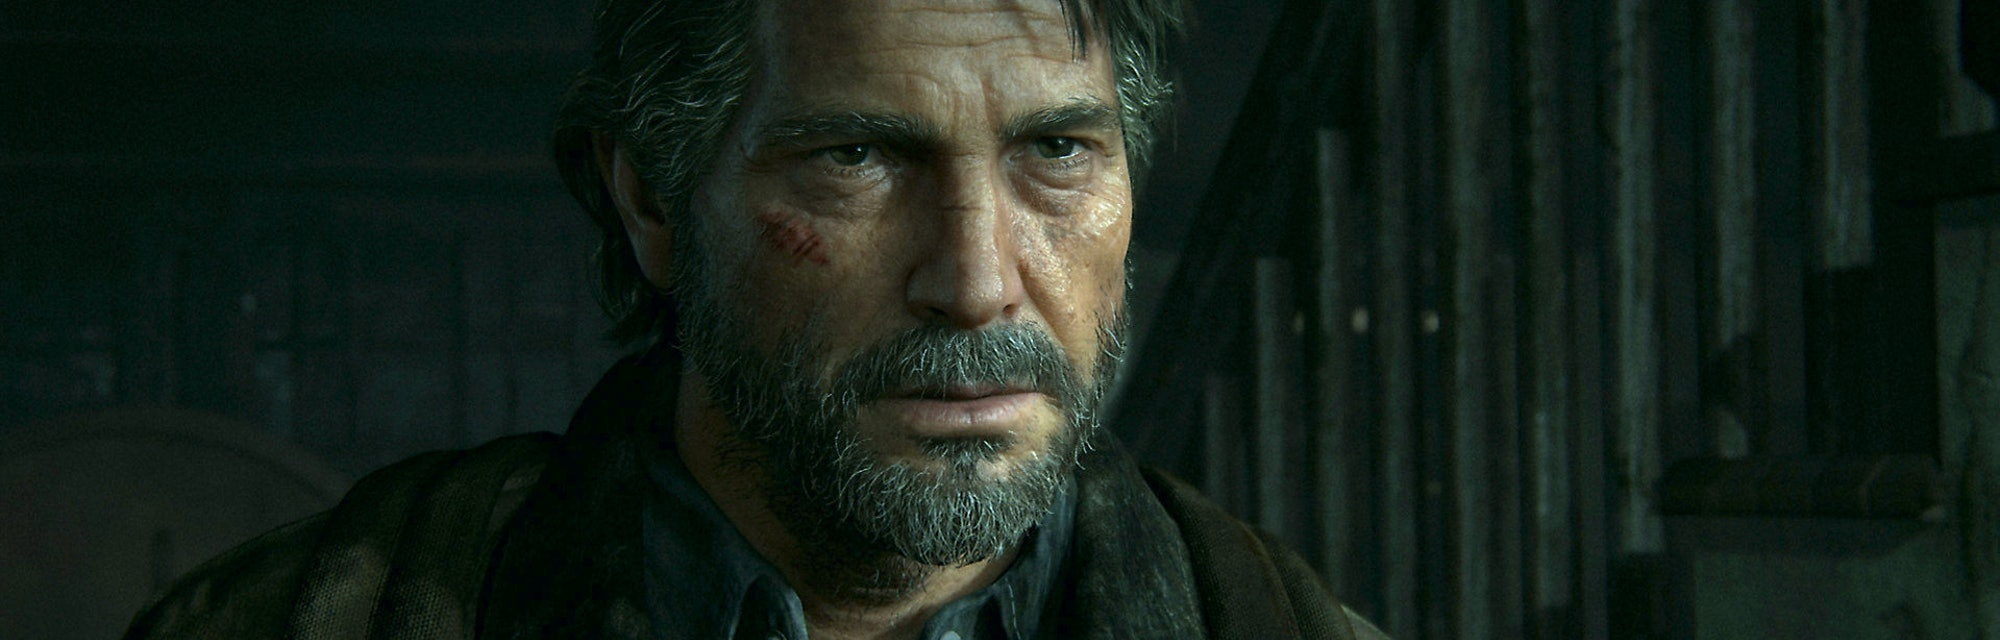 Joel, the main playable protagonist in the first 'The Last of Us' appears in this official image from the sequel.